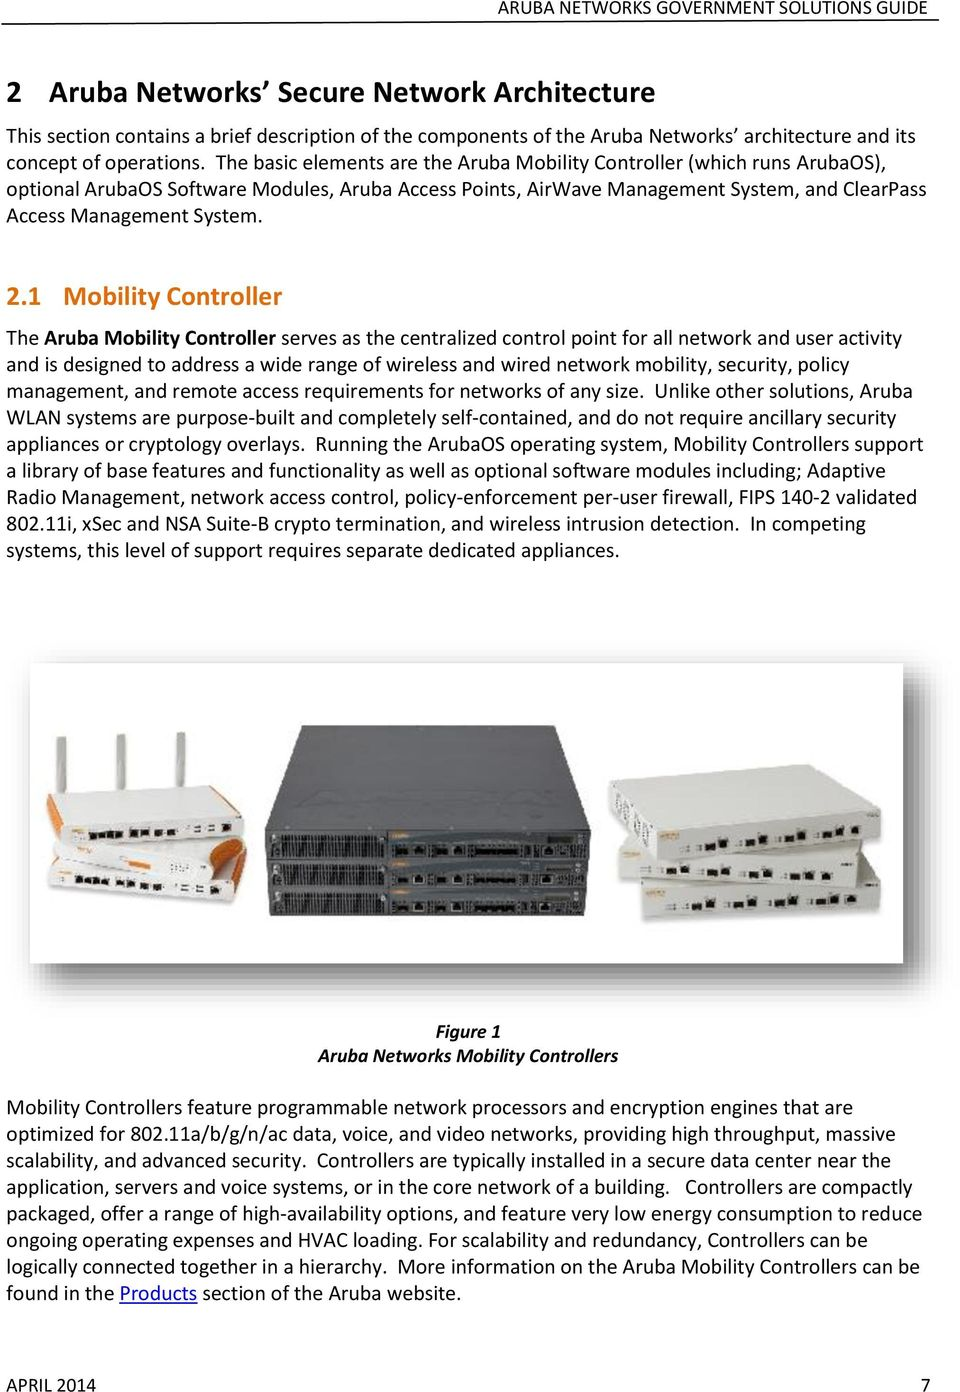 ARUBA NETWORKS GOVERNMENT SOLUTIONS GUIDE APRIL PDF